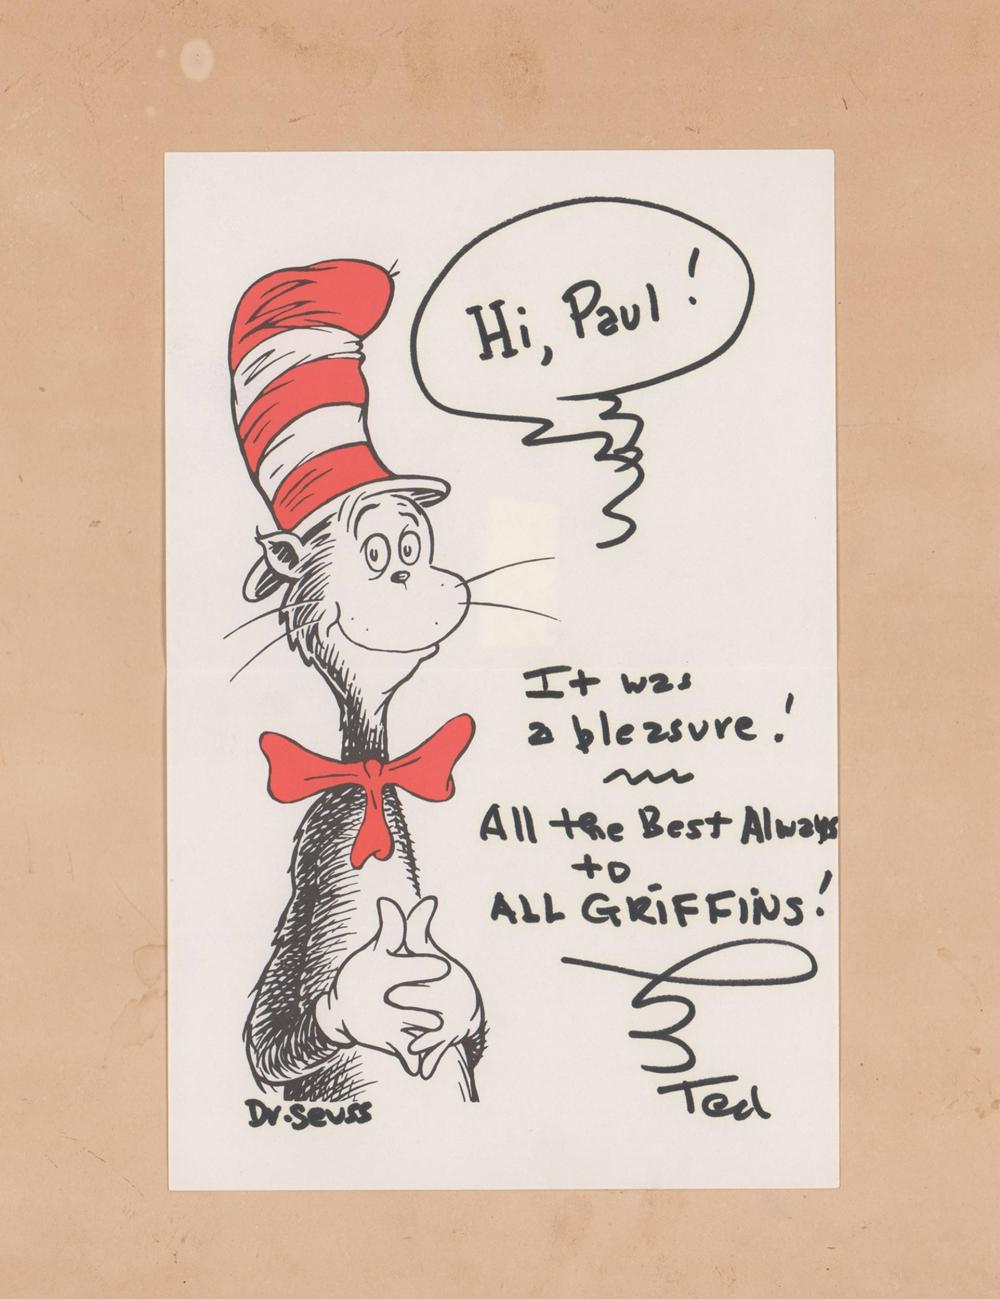 Dr. Seuss Original Drawing with Impeccable Provenance, Scarce Presentation Piece